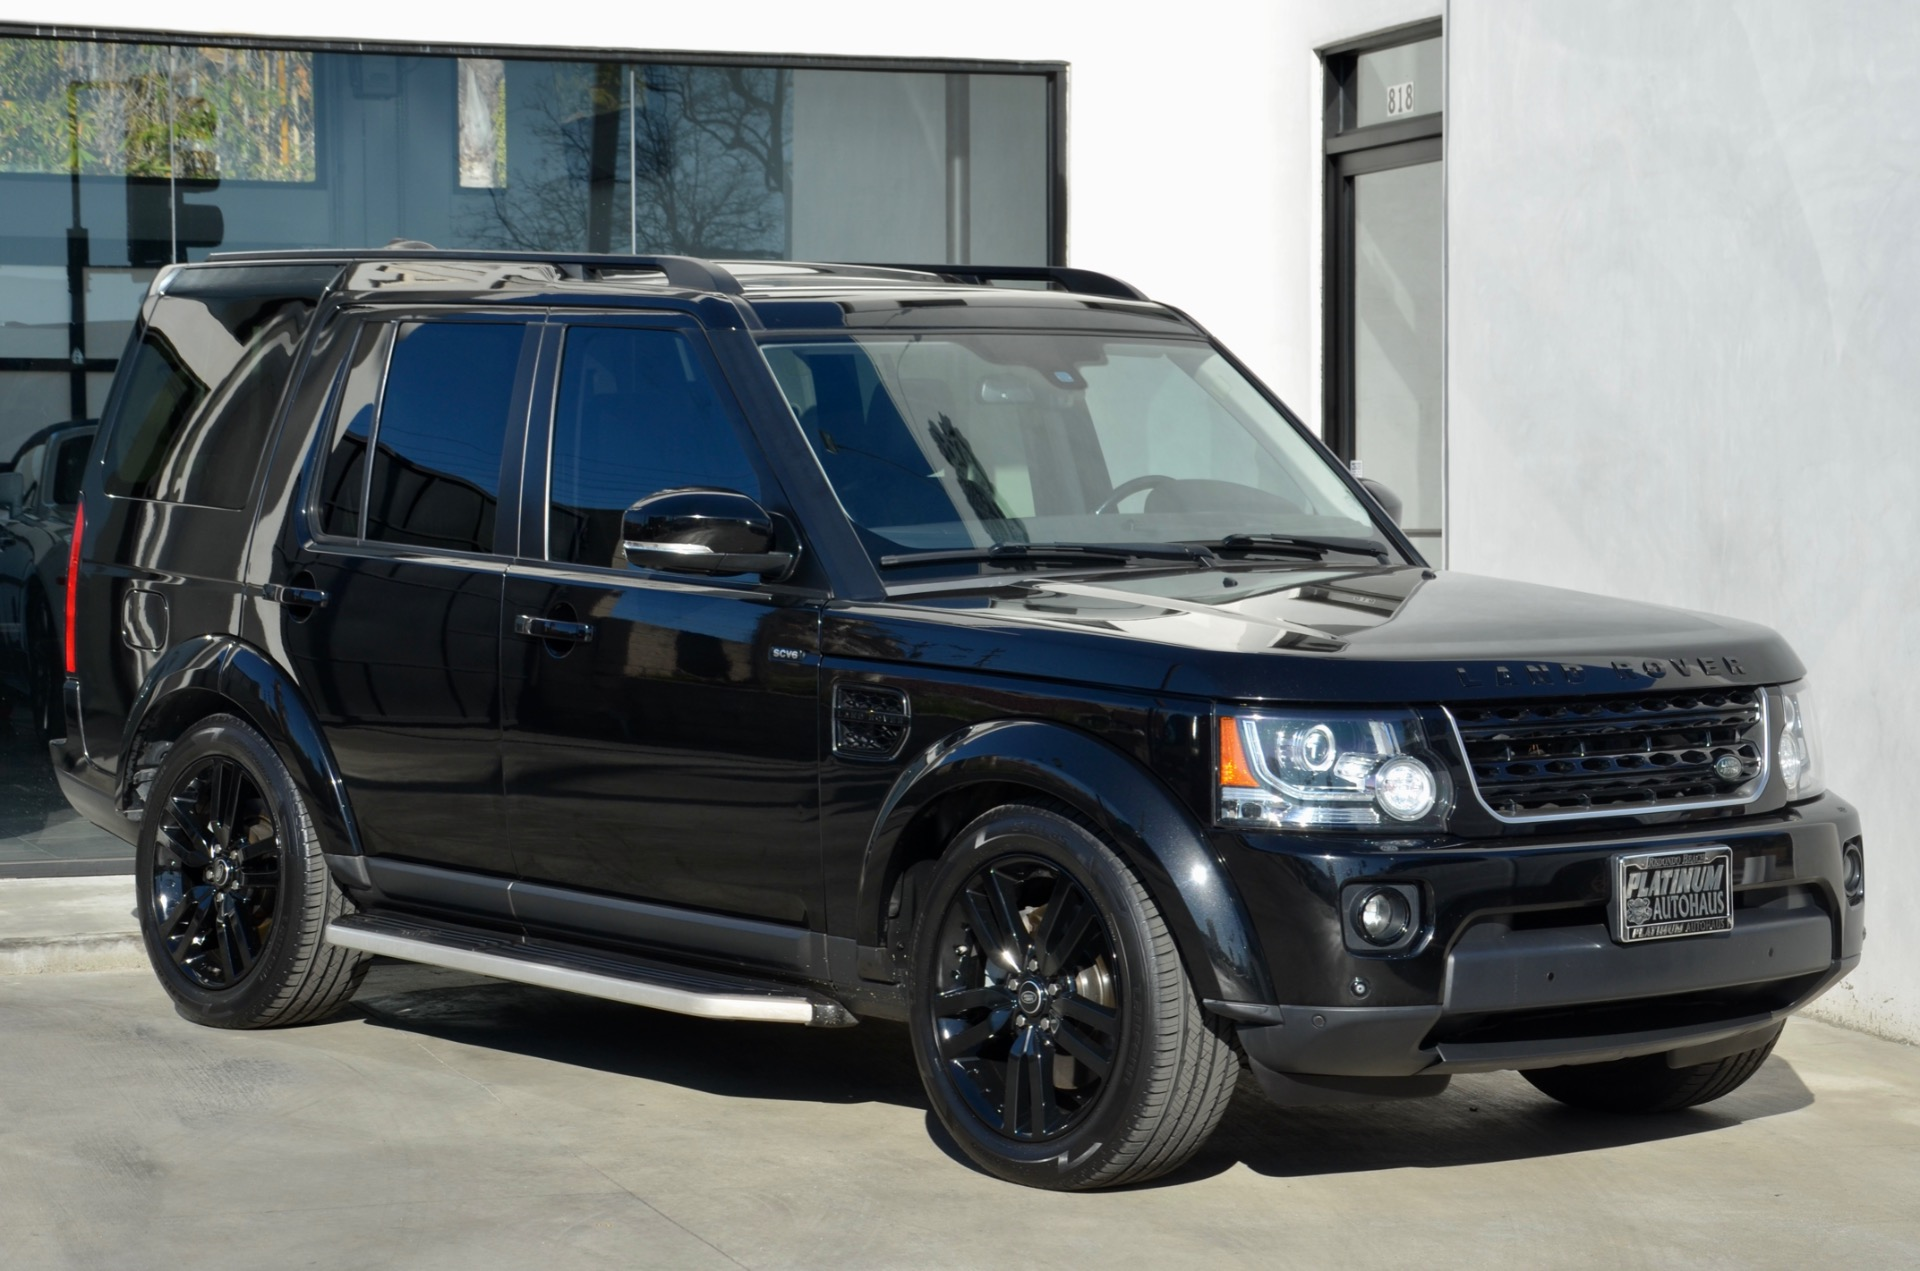 2015 Land Rover Lr4 Hse Lux Stock 6141 For Sale Near Redondo Beach Ca Ca Land Rover Dealer